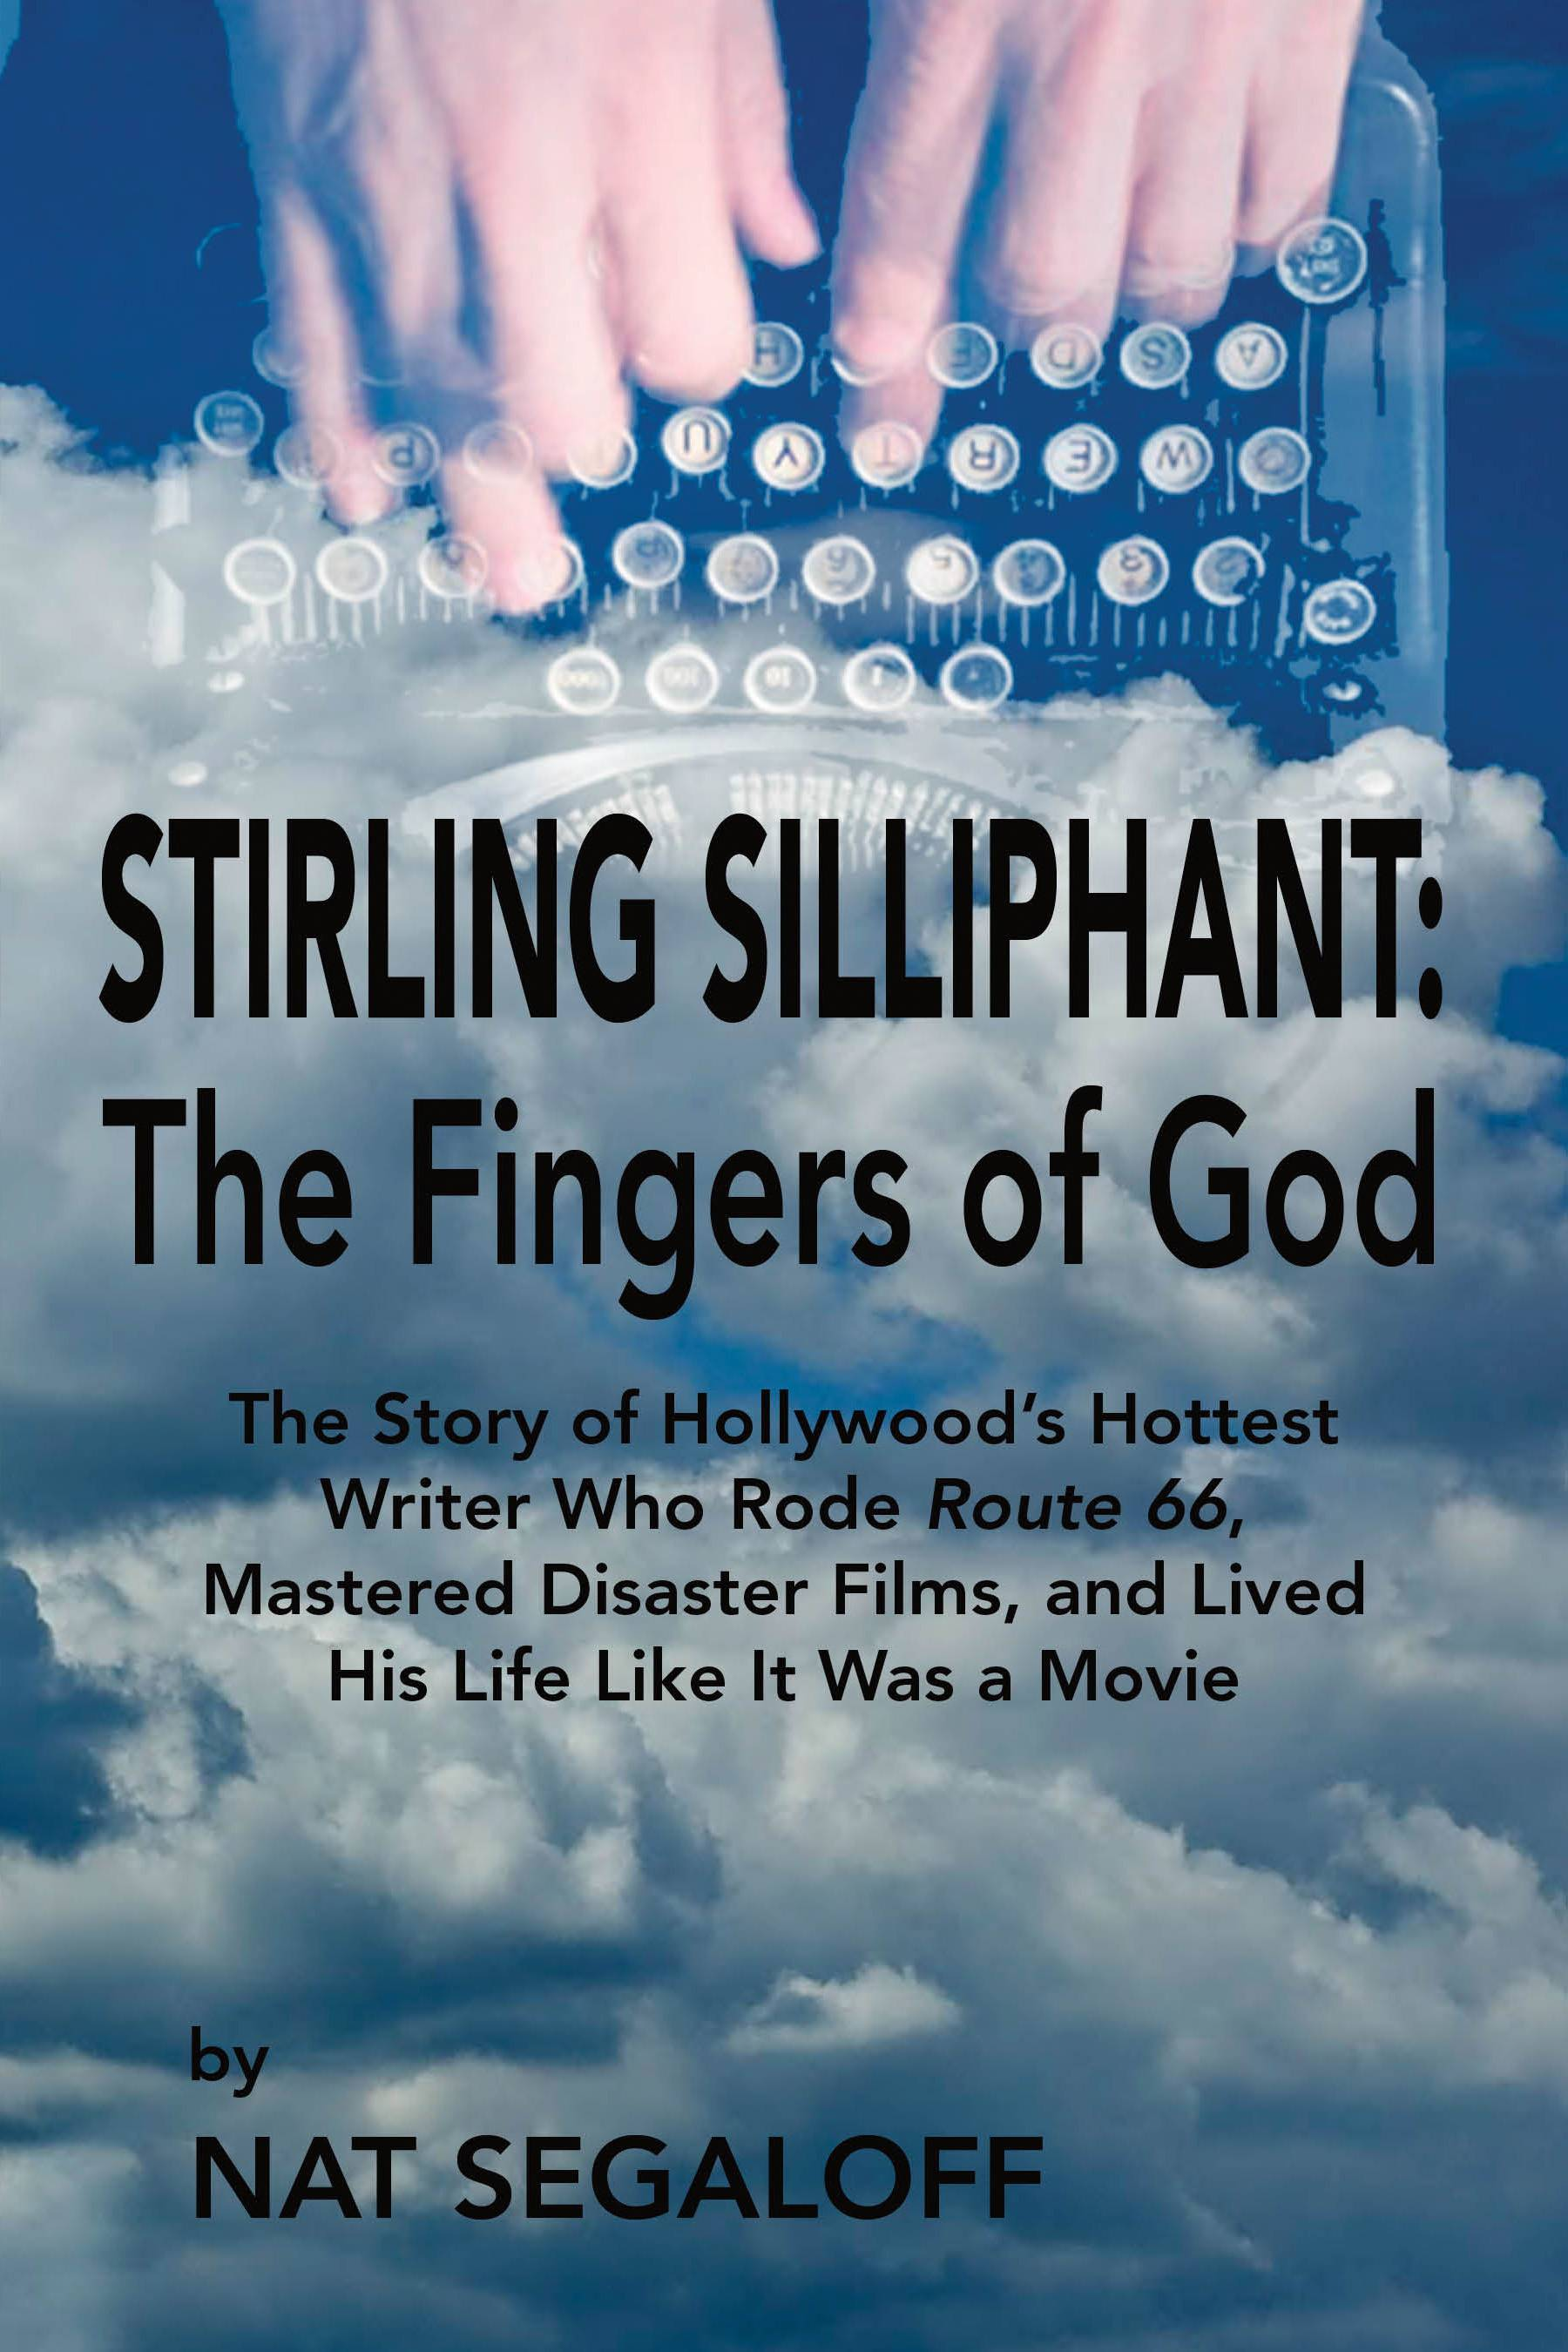 """Stirling Silliphant: The Fingers of God"" by Nat Segaloff delves into successful screenwriters life and works."